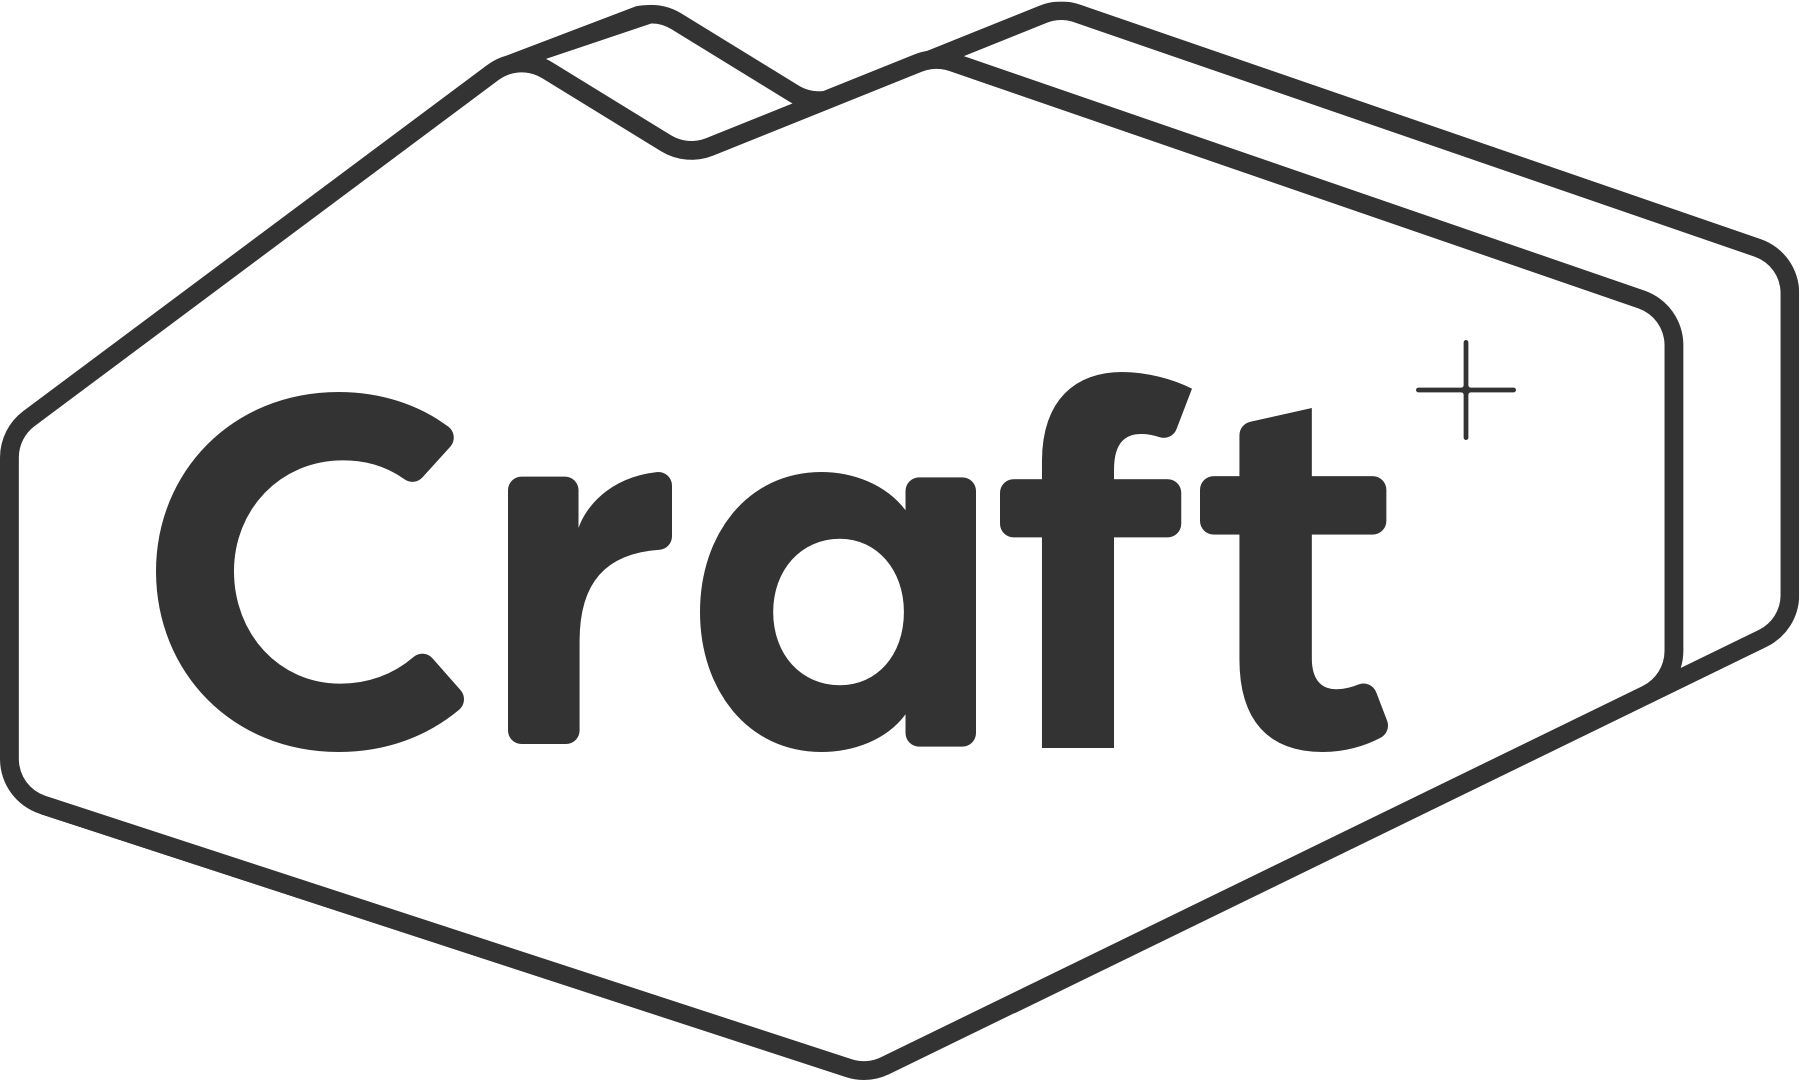 Logo Craft platform